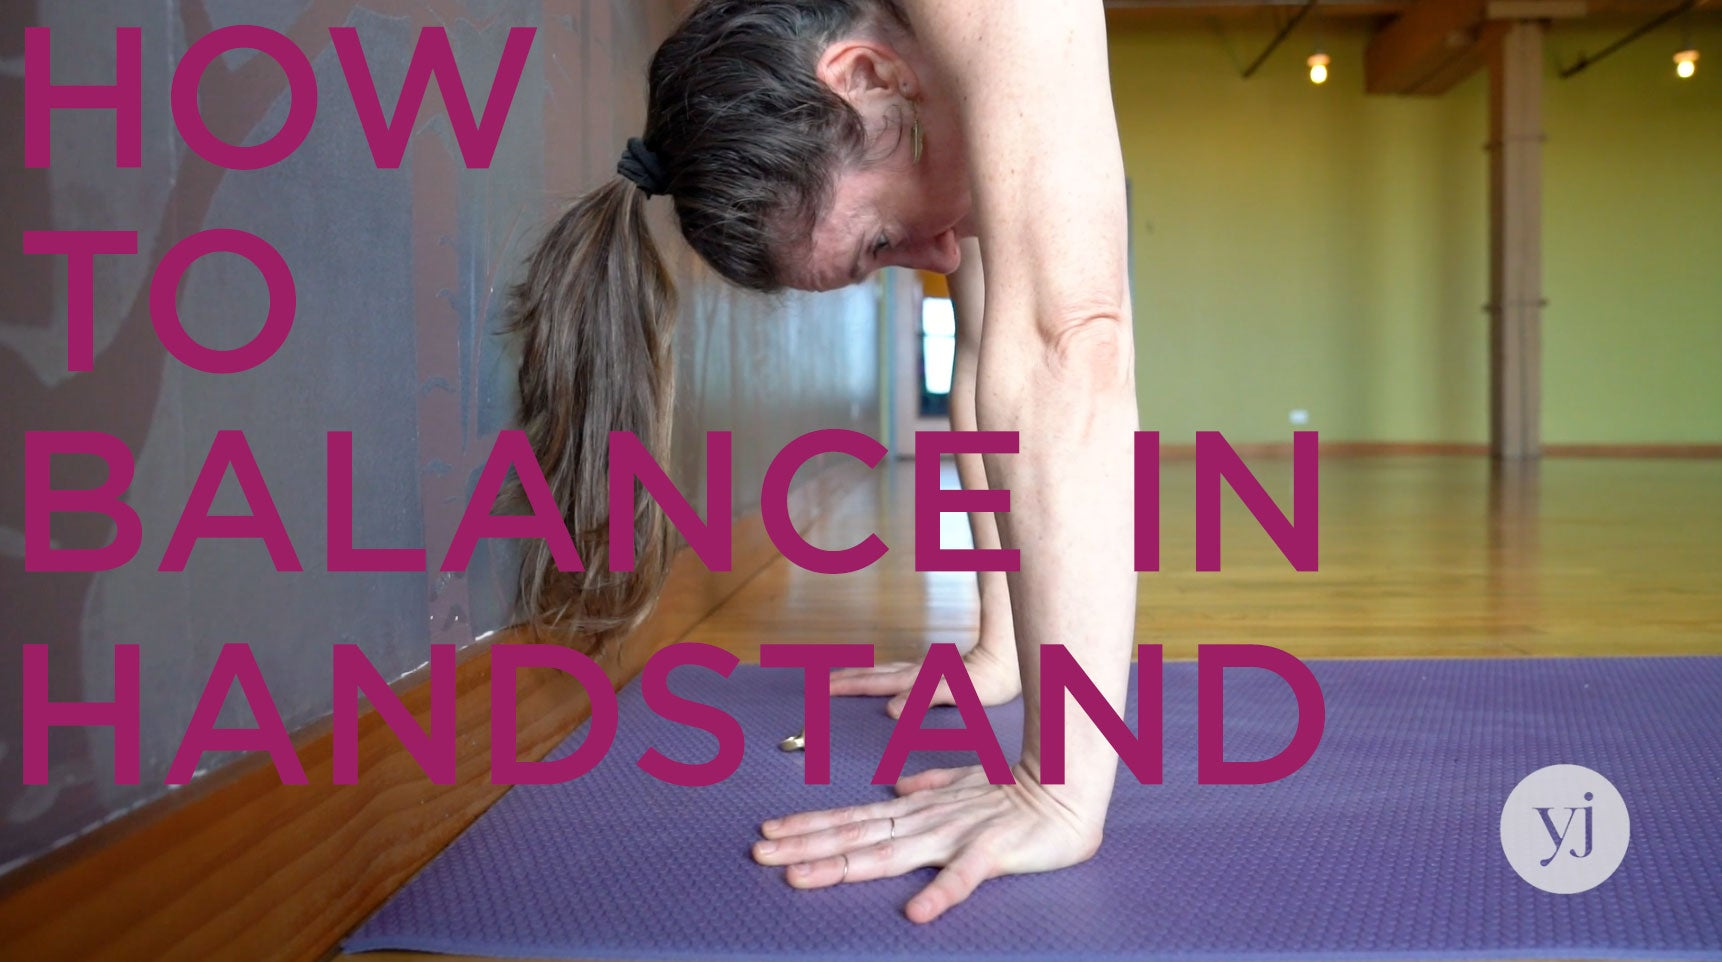 Claire Mark's Handstand Balancing Tip Will Forever Change How You Invert